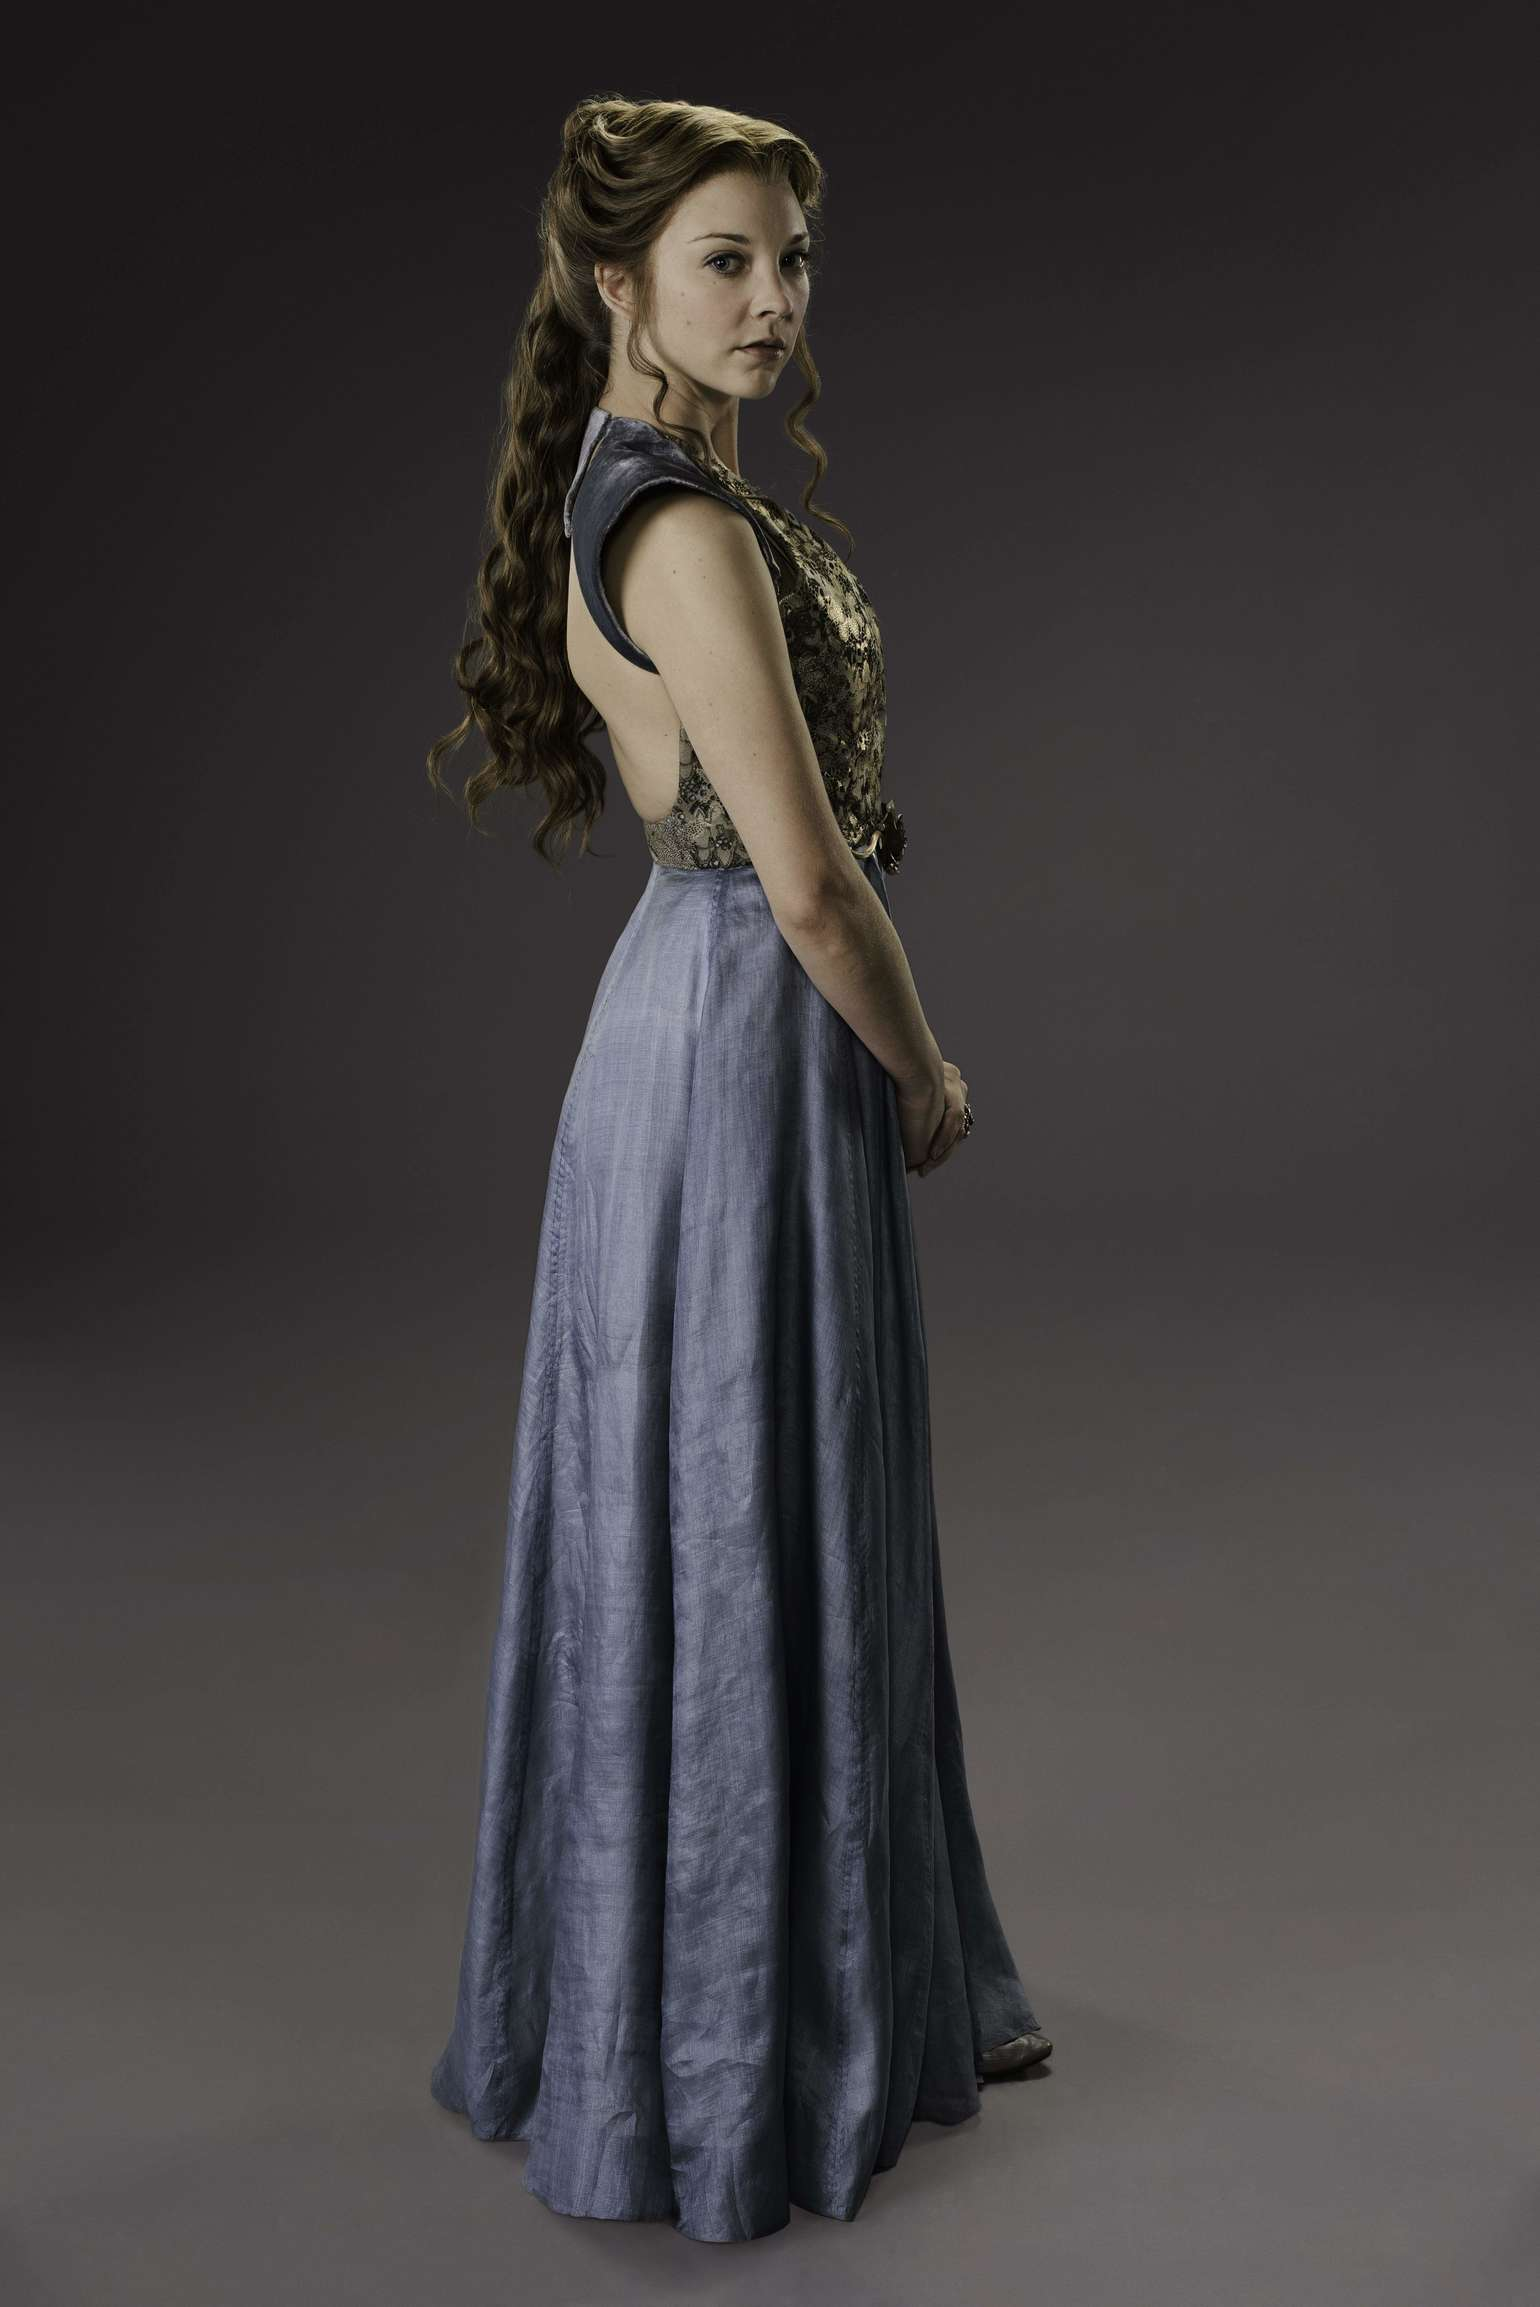 Natalie Dormer - Game of Thrones Season 4 Portraits -03 ...